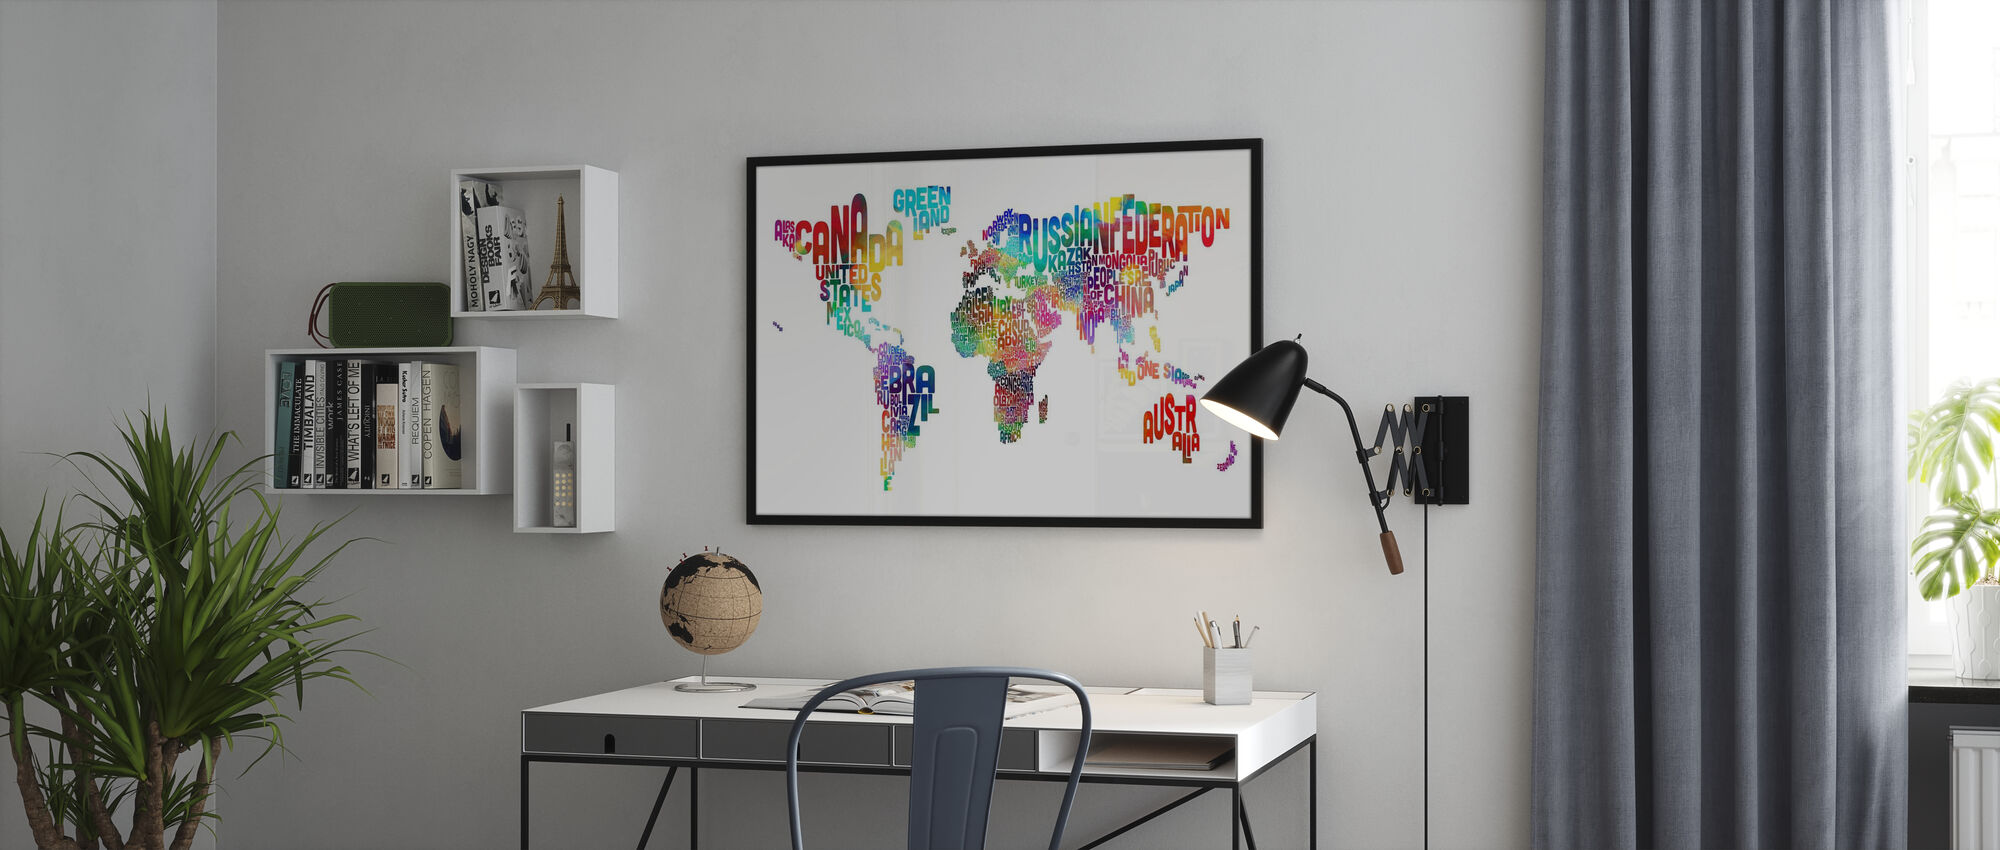 Typographic Text World Map 2 - Poster - Office